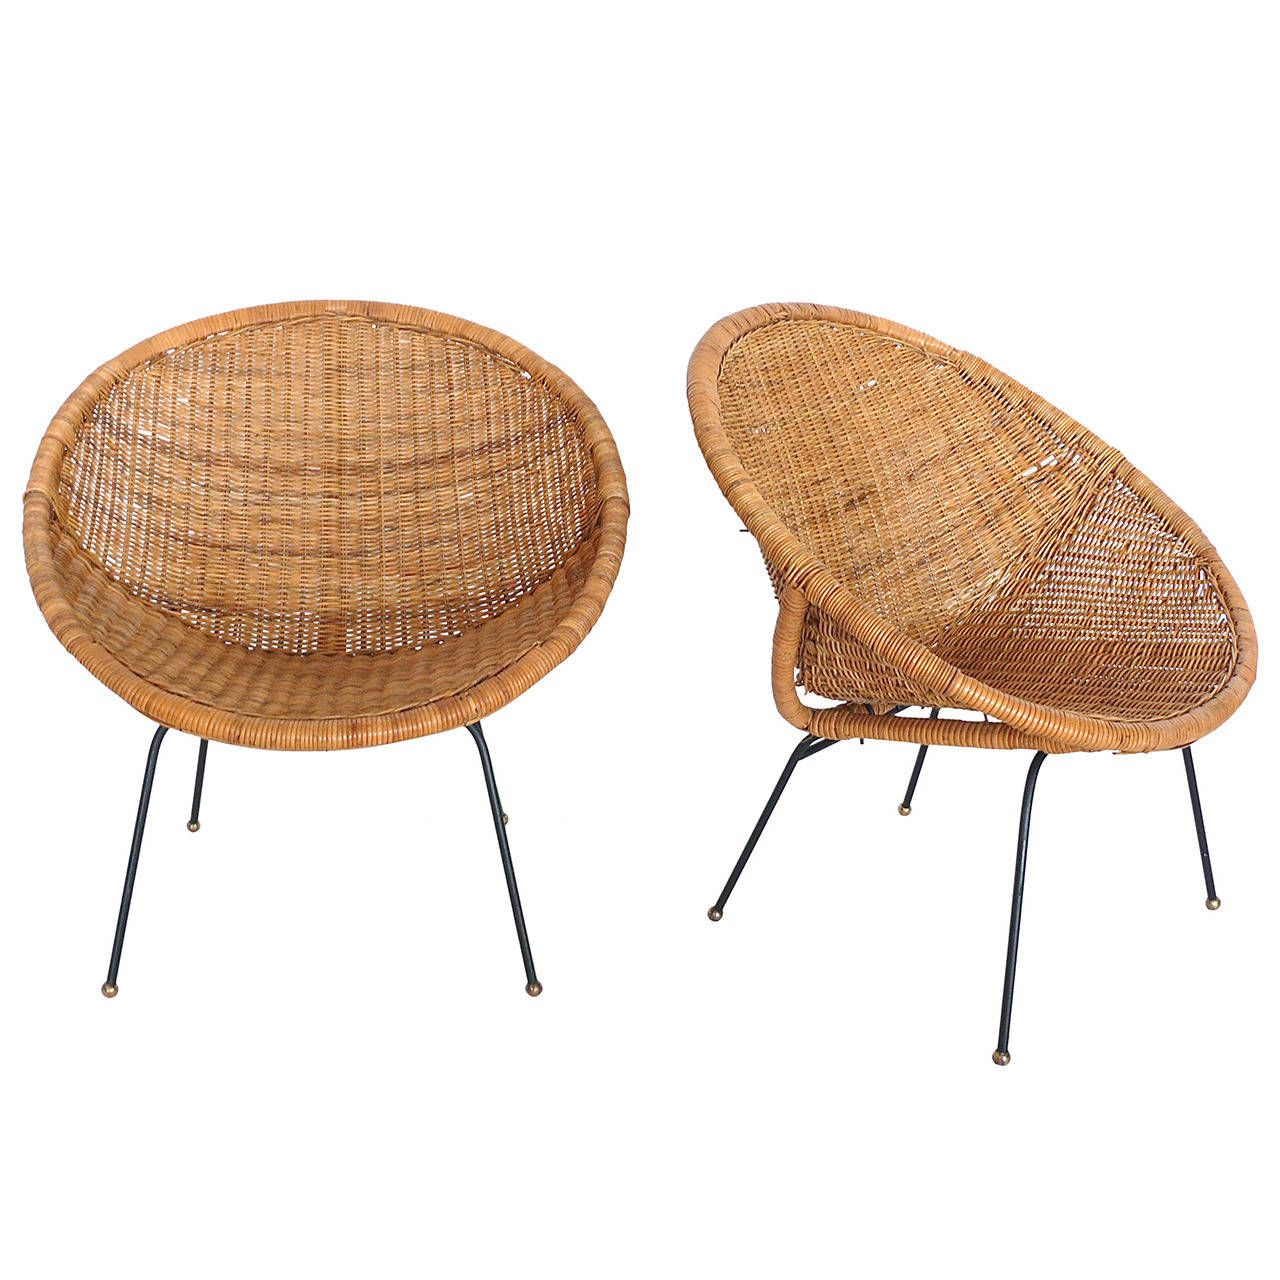 woven wicker and iron bucket chairs | bucket chairs, modern chairs